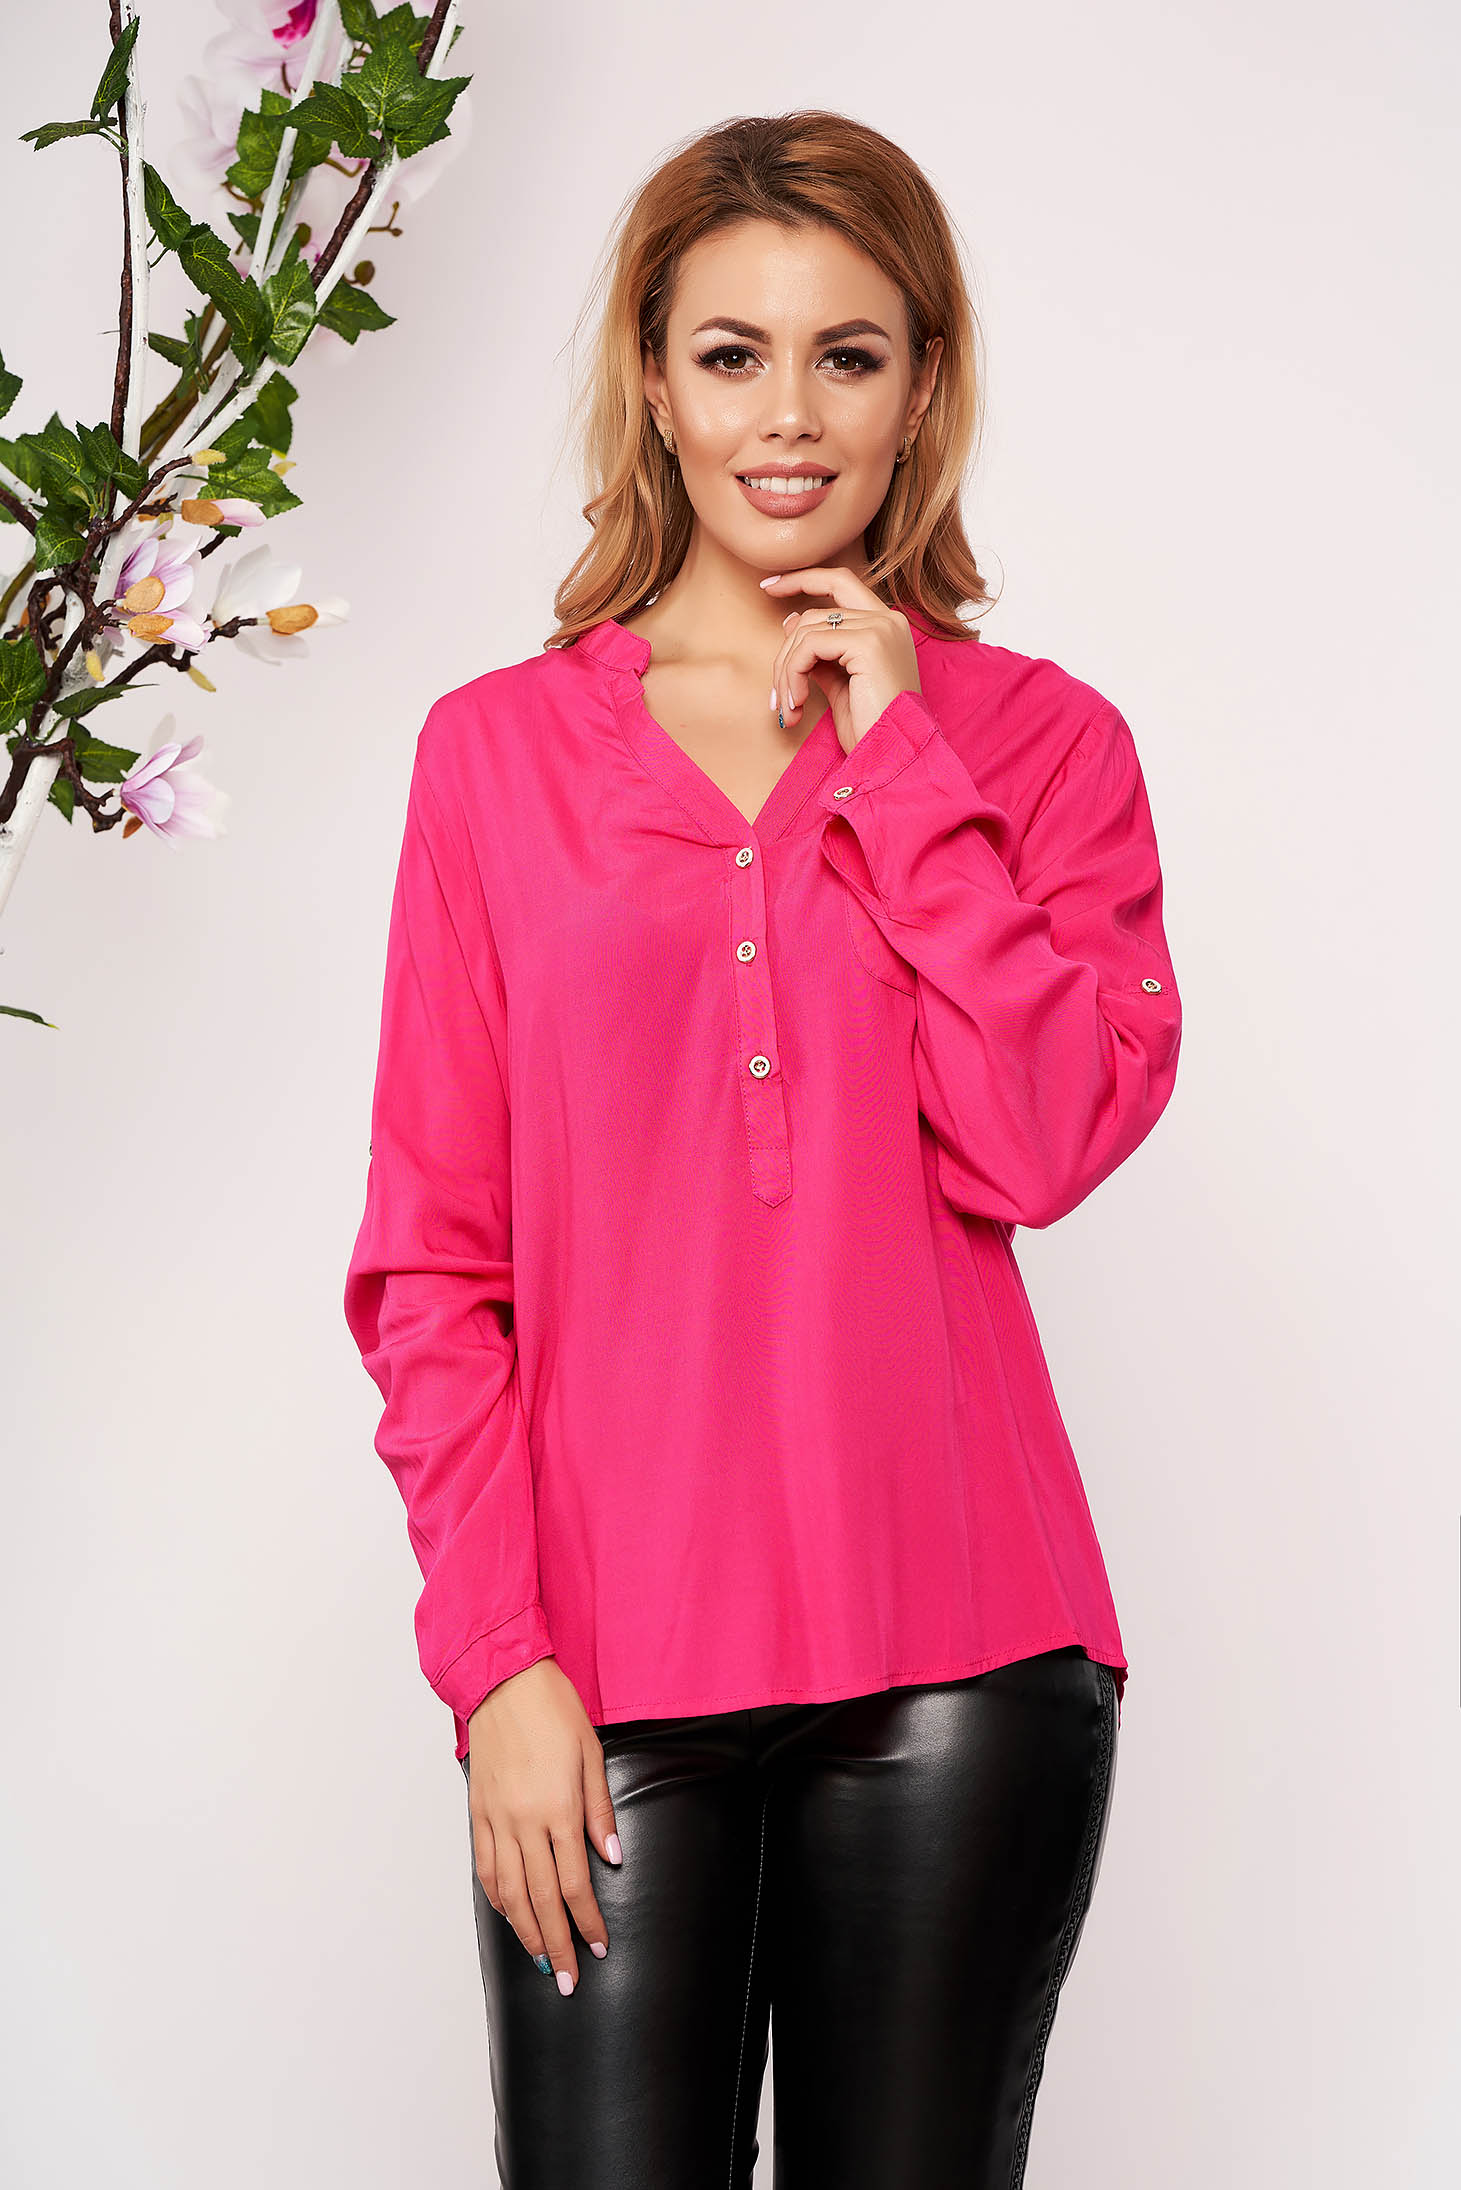 Pink women`s shirt office short cut with v-neckline long sleeved thin fabric